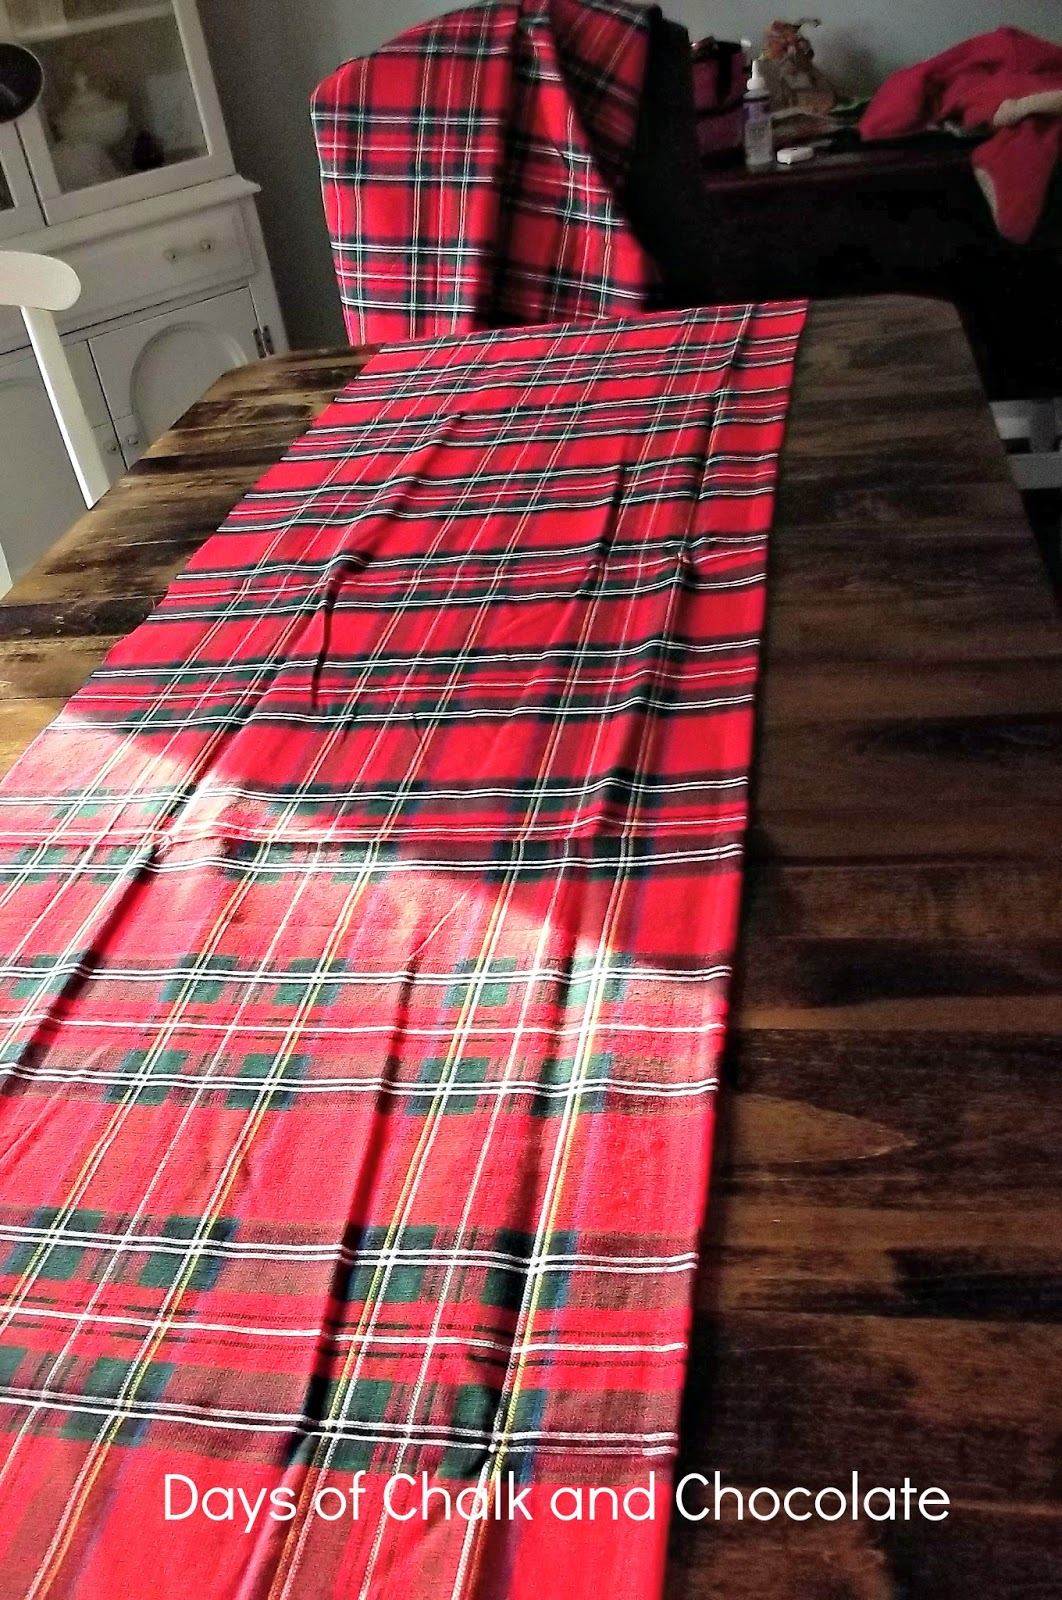 fold over 12 inch on the raw long side iron fold over again iron sew i only had one raw side because i kept the factory seam on the other - Christmas Plaid Table Runner